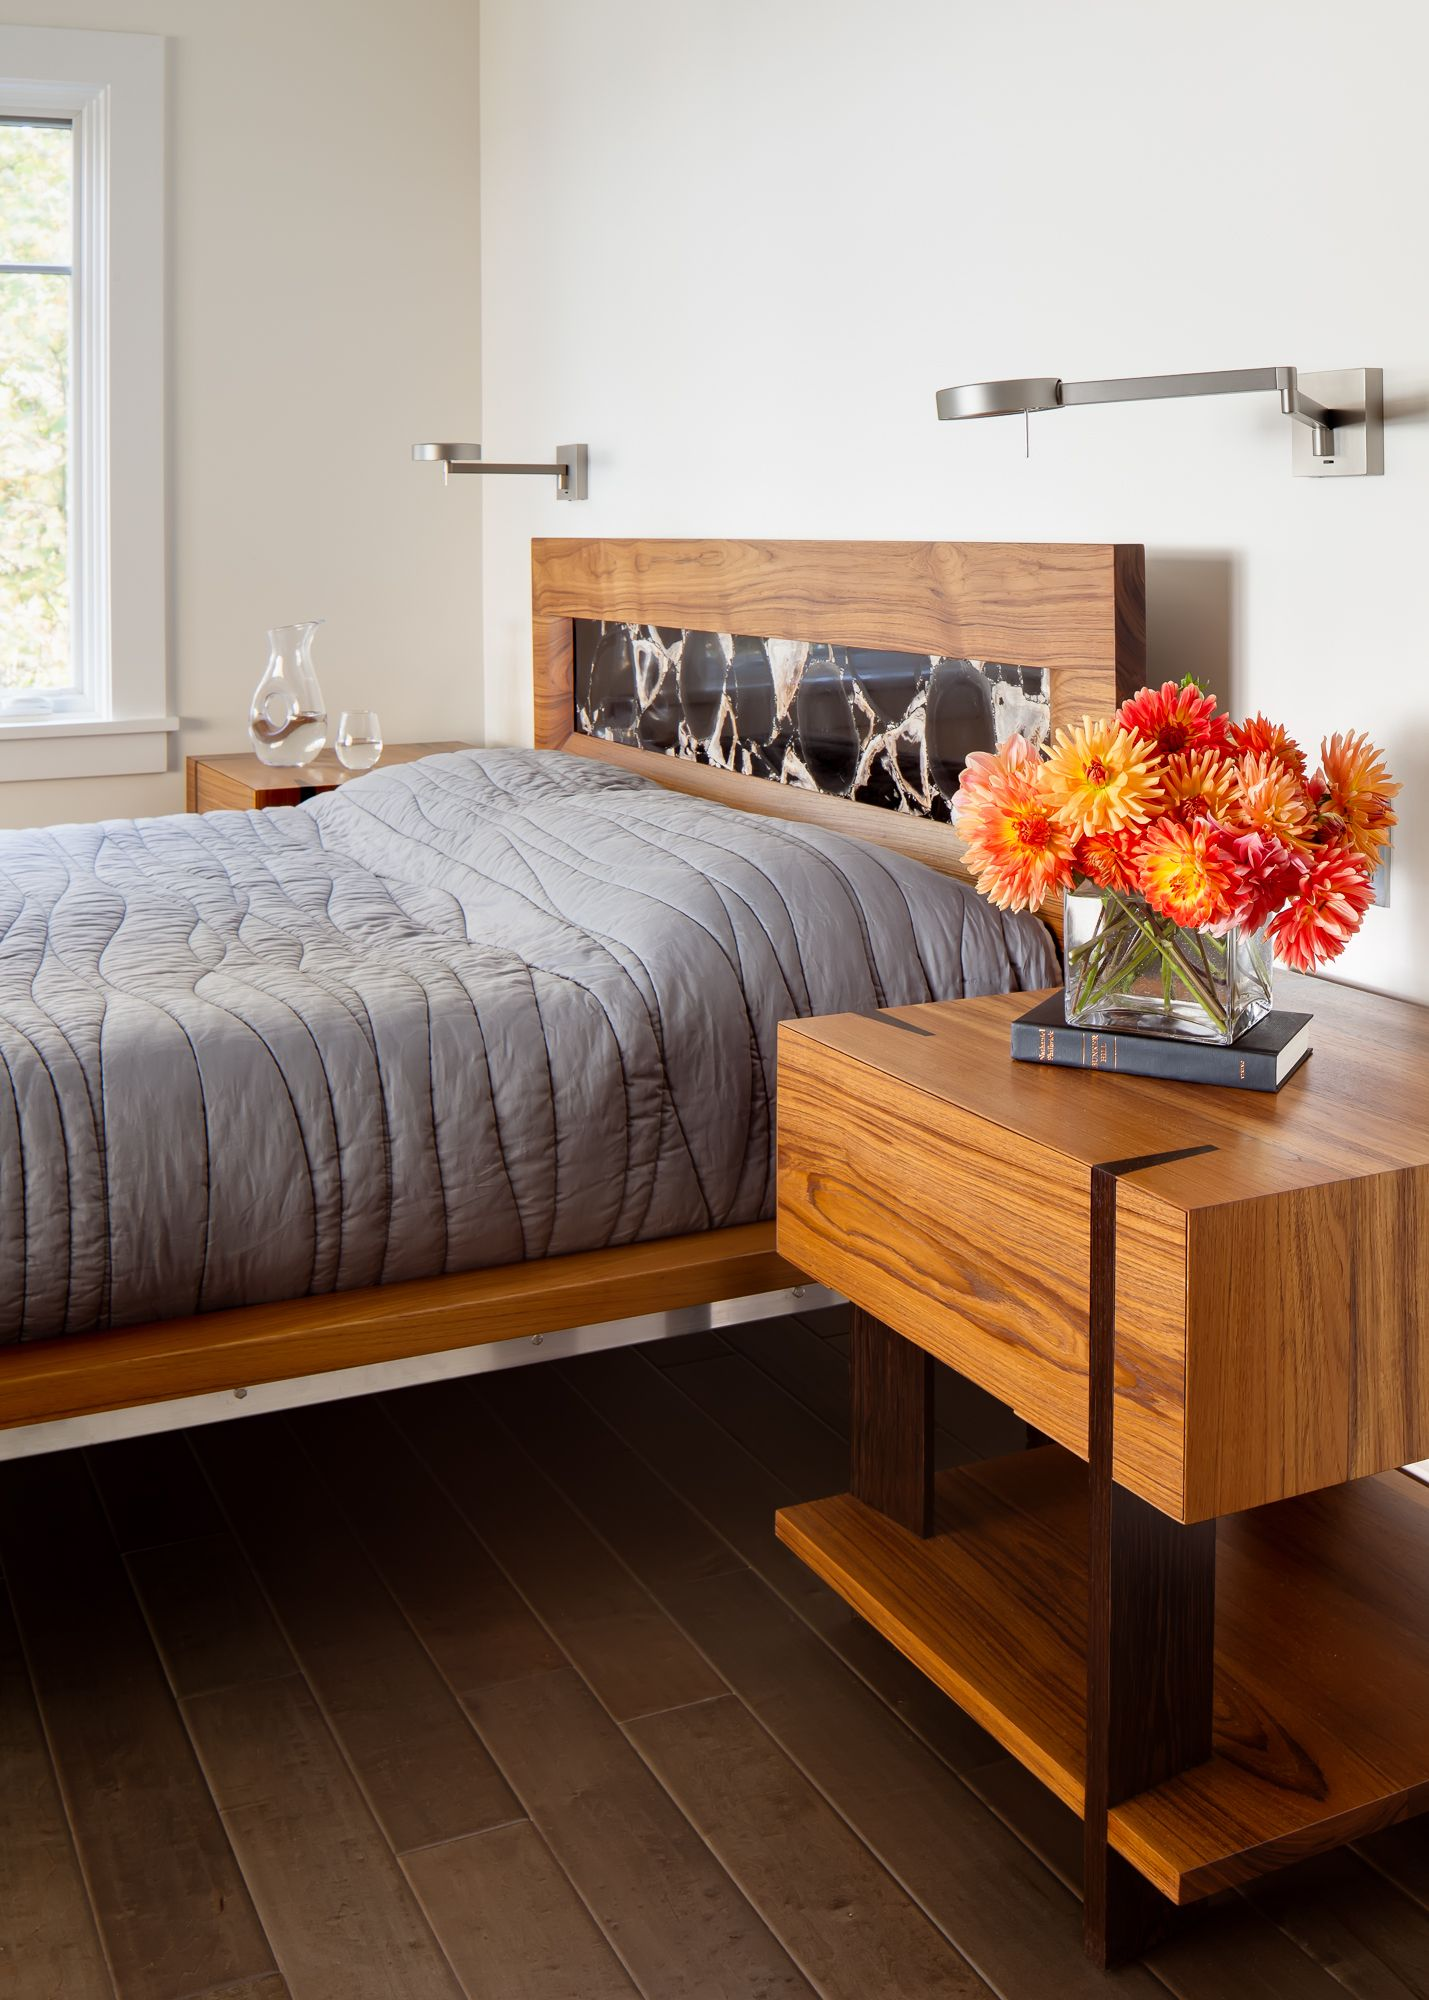 Allagash Constructed from solid Teak and Wenge. This